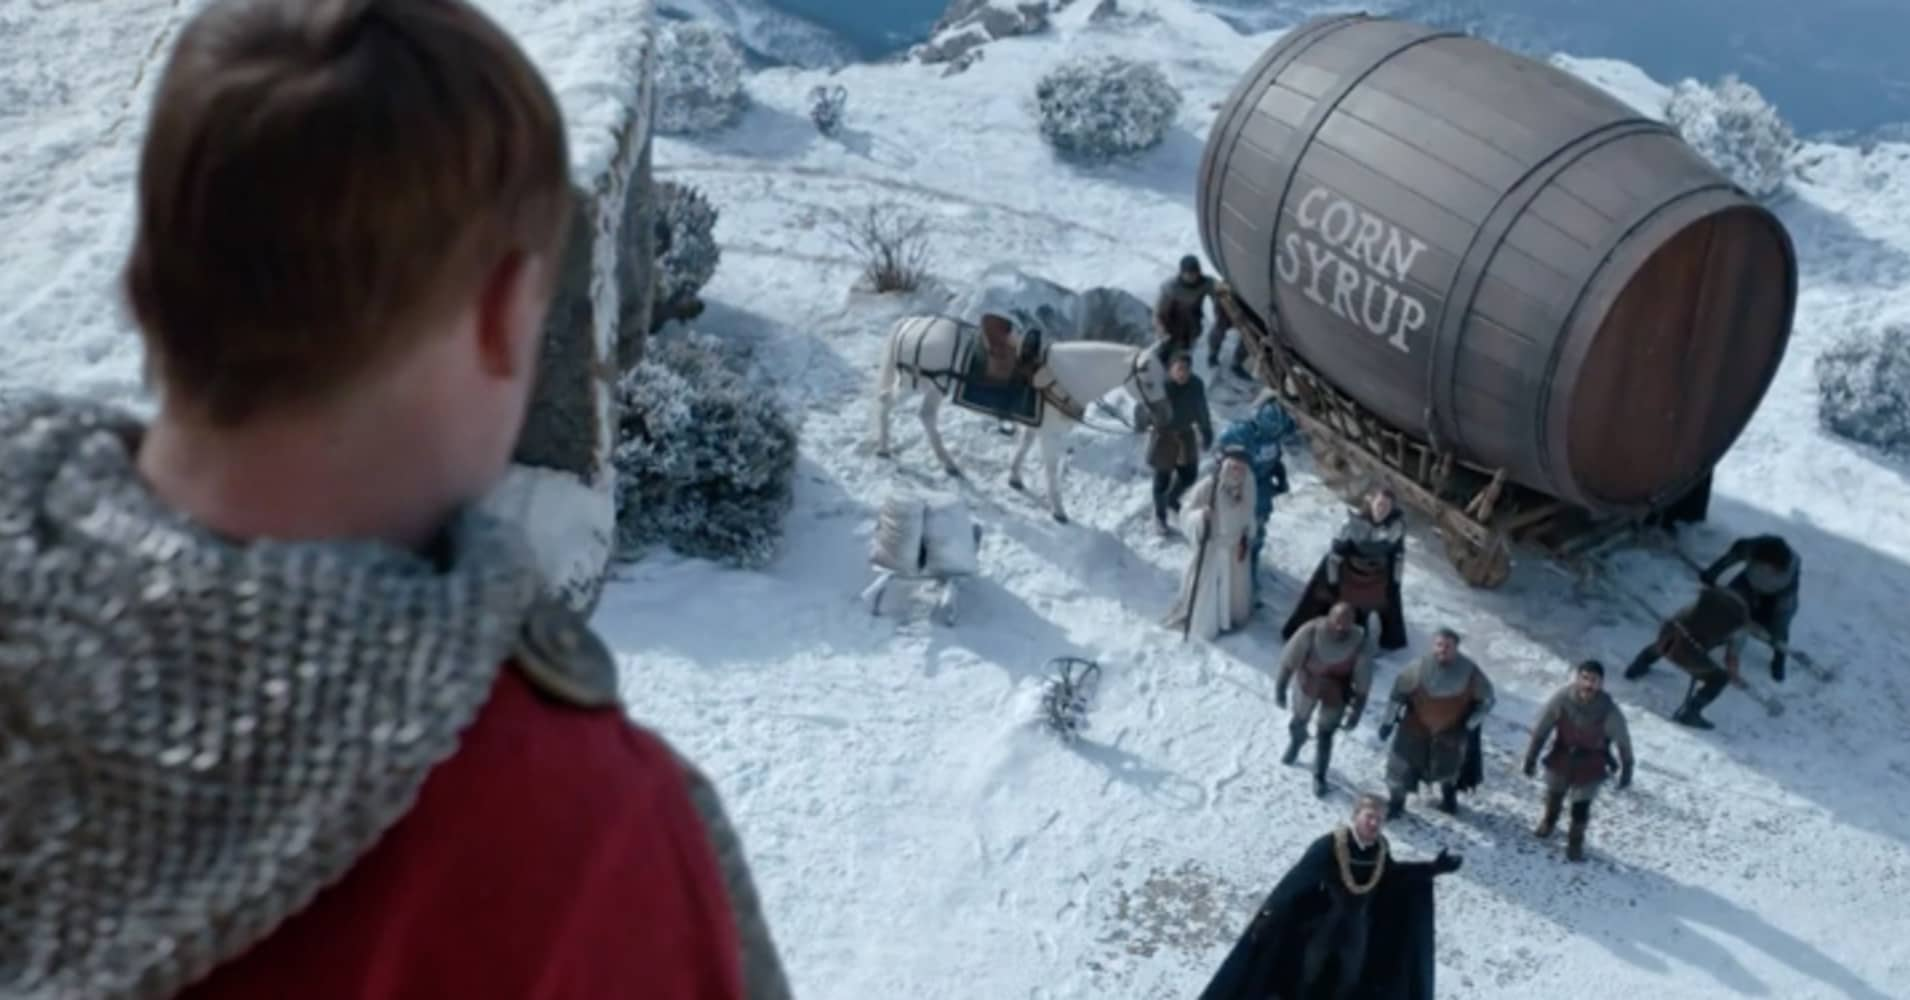 AB InBev alleges that a MillerCoors executive thanked the brewer for its controversial Super Bowl ad